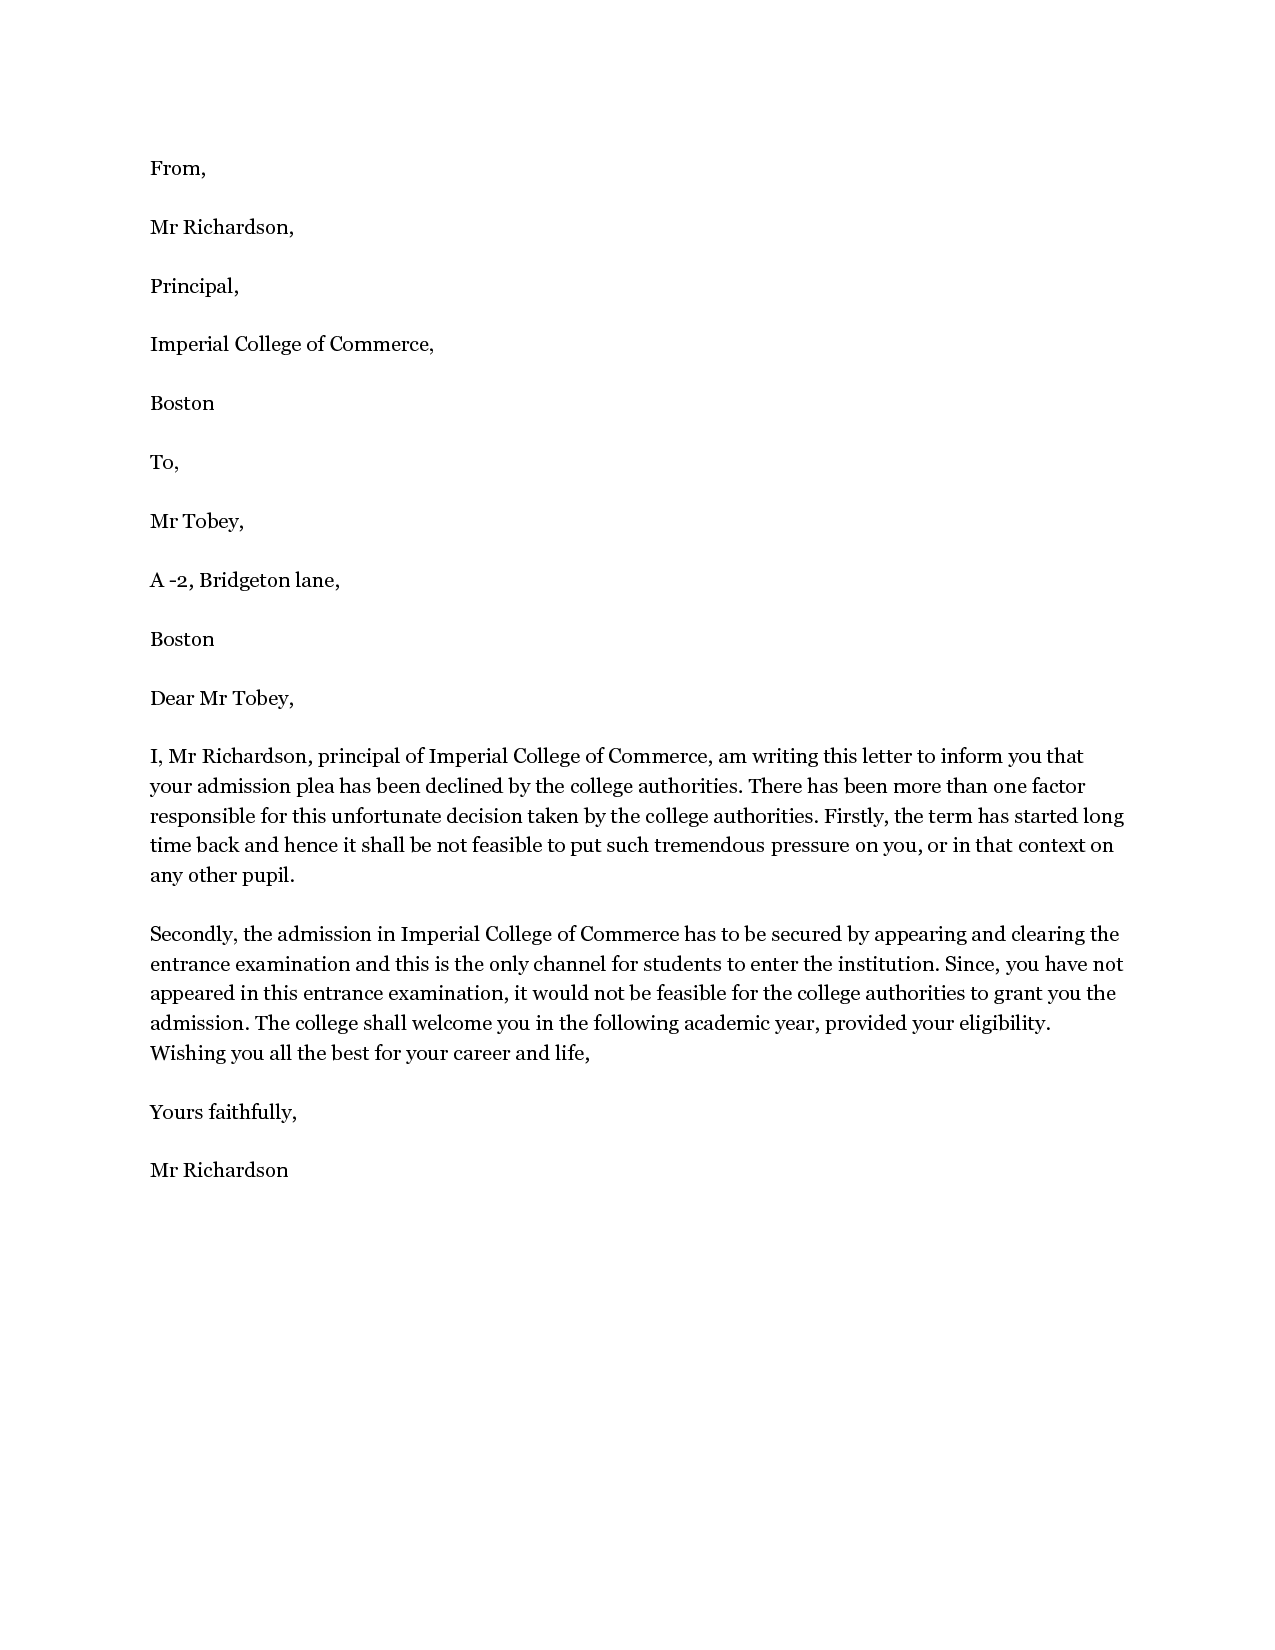 harvard acceptance letter to get an admissions acceptance letter college decline letter the letter should be brief positive and to the point here is a sample letter for declining college admission